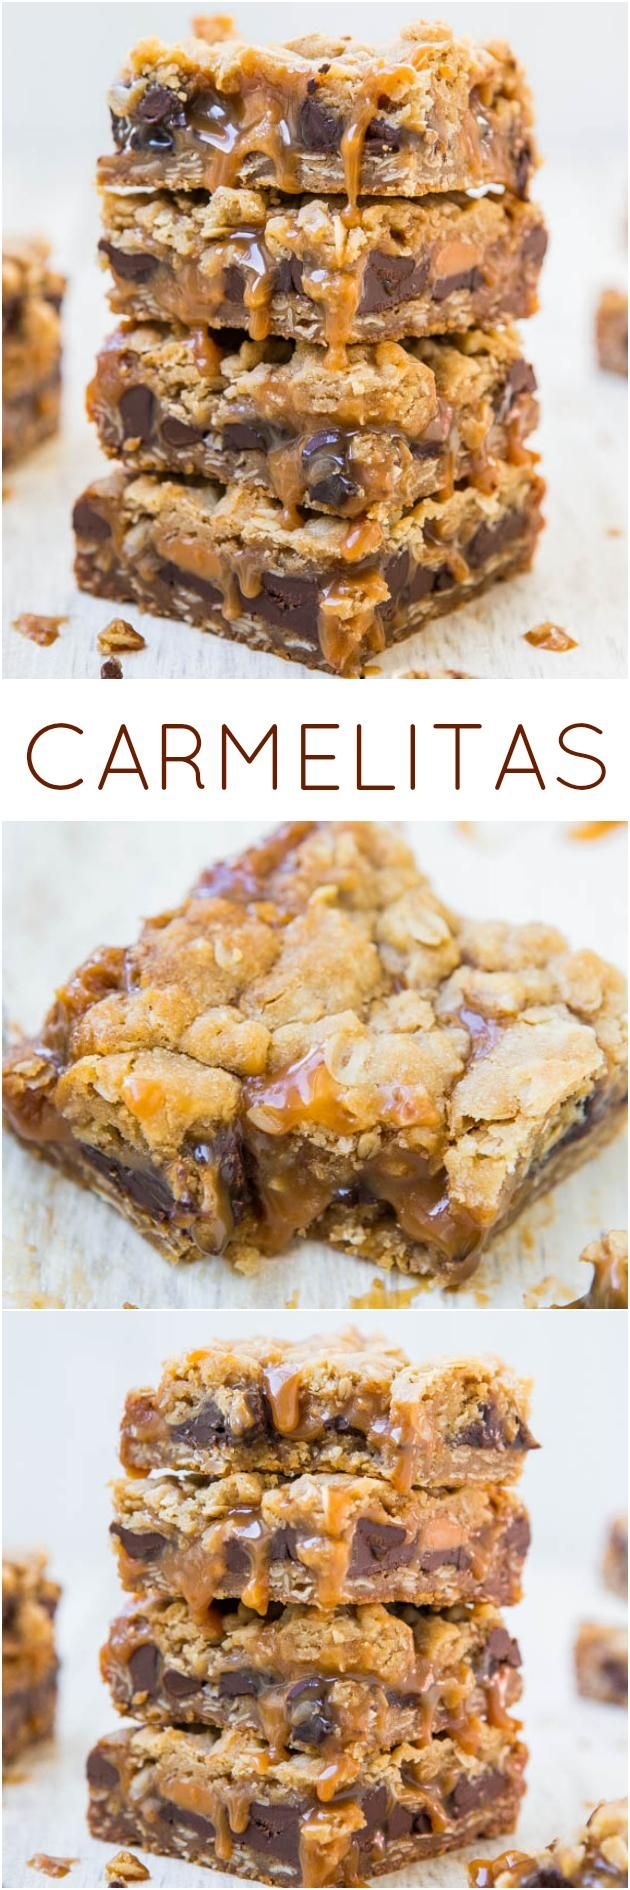 Stop everything and try this - Easy one-bowl, no-mixer Carmelitas recipe.